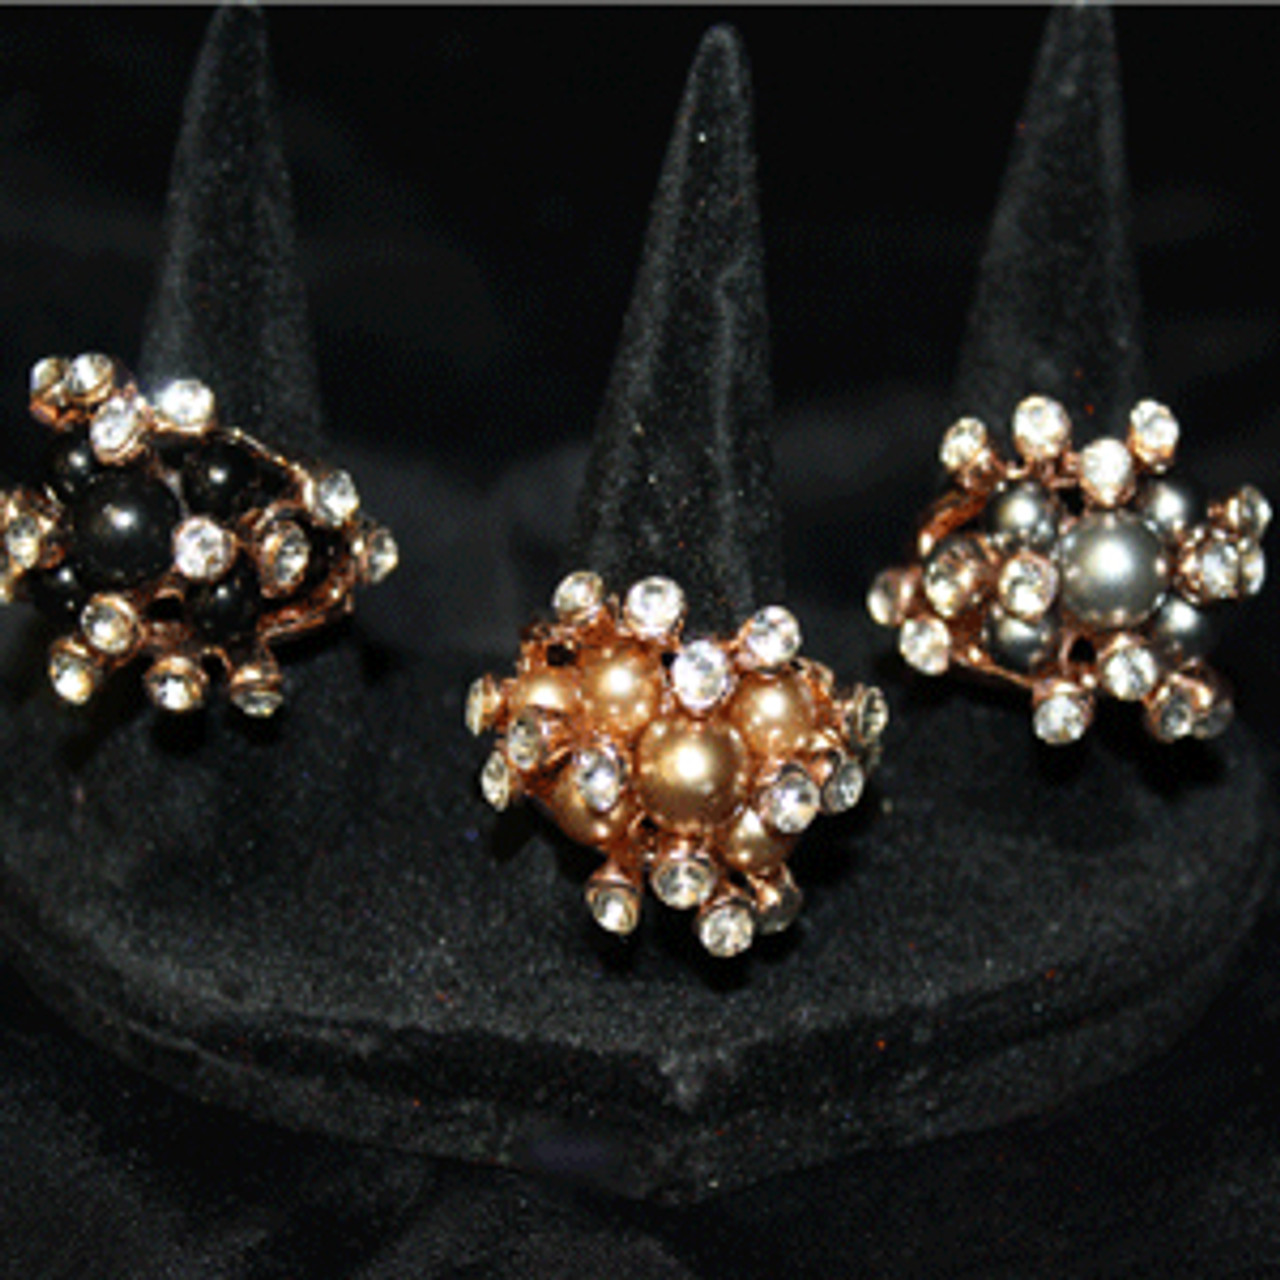 Pearl cocktail rings